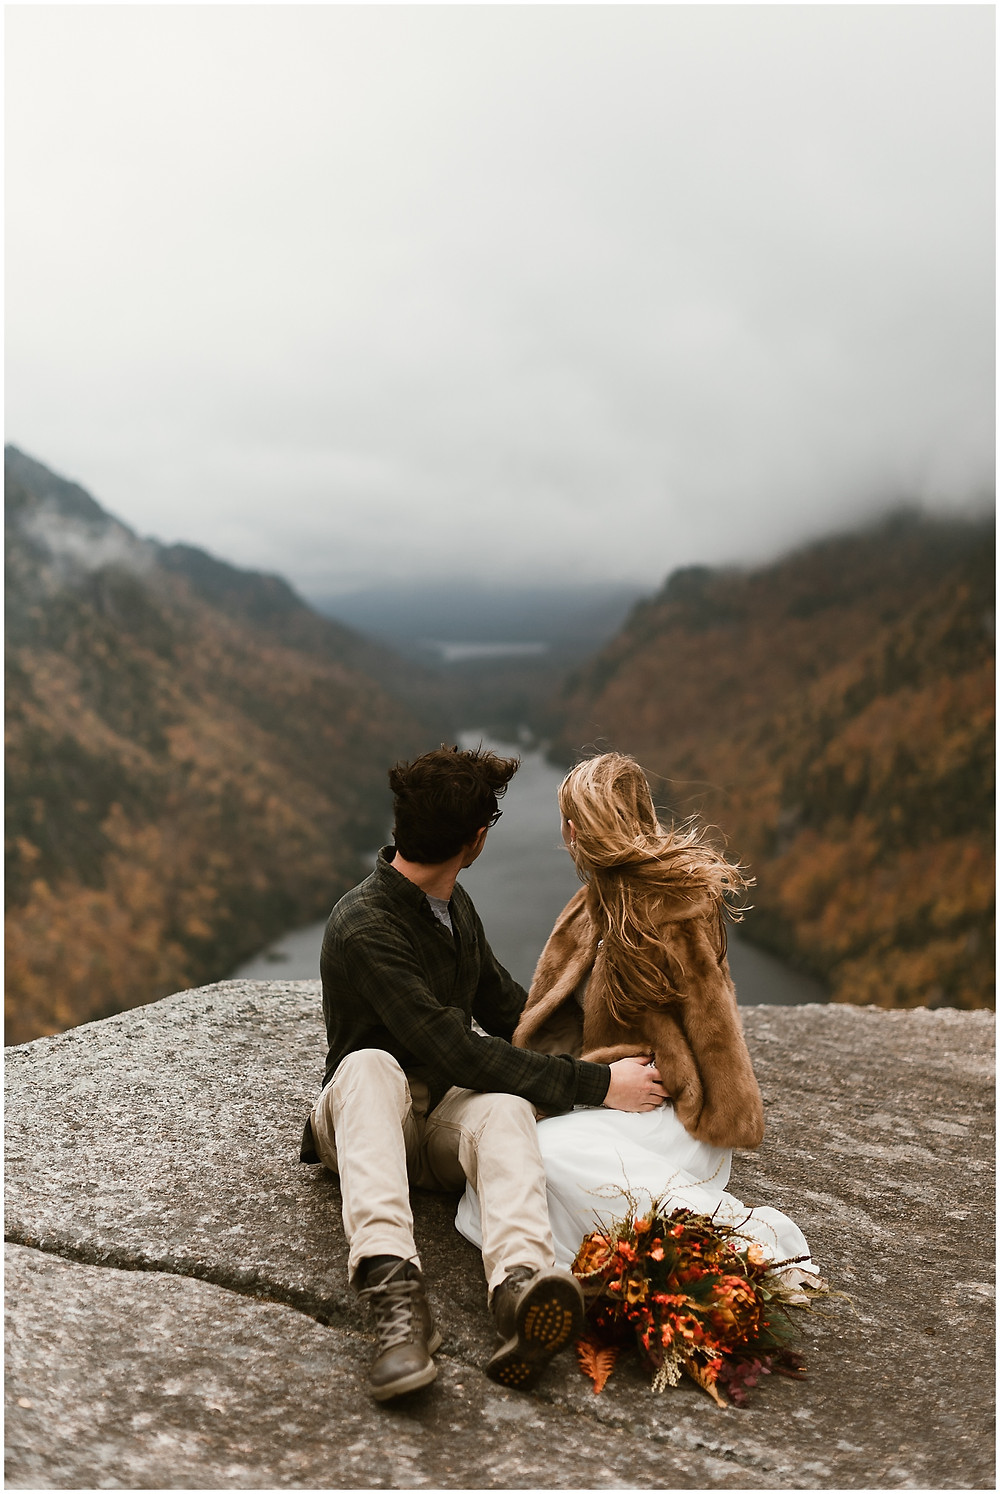 Hiking vow renewal in the Adirondacks by Mountainaire Gatherings